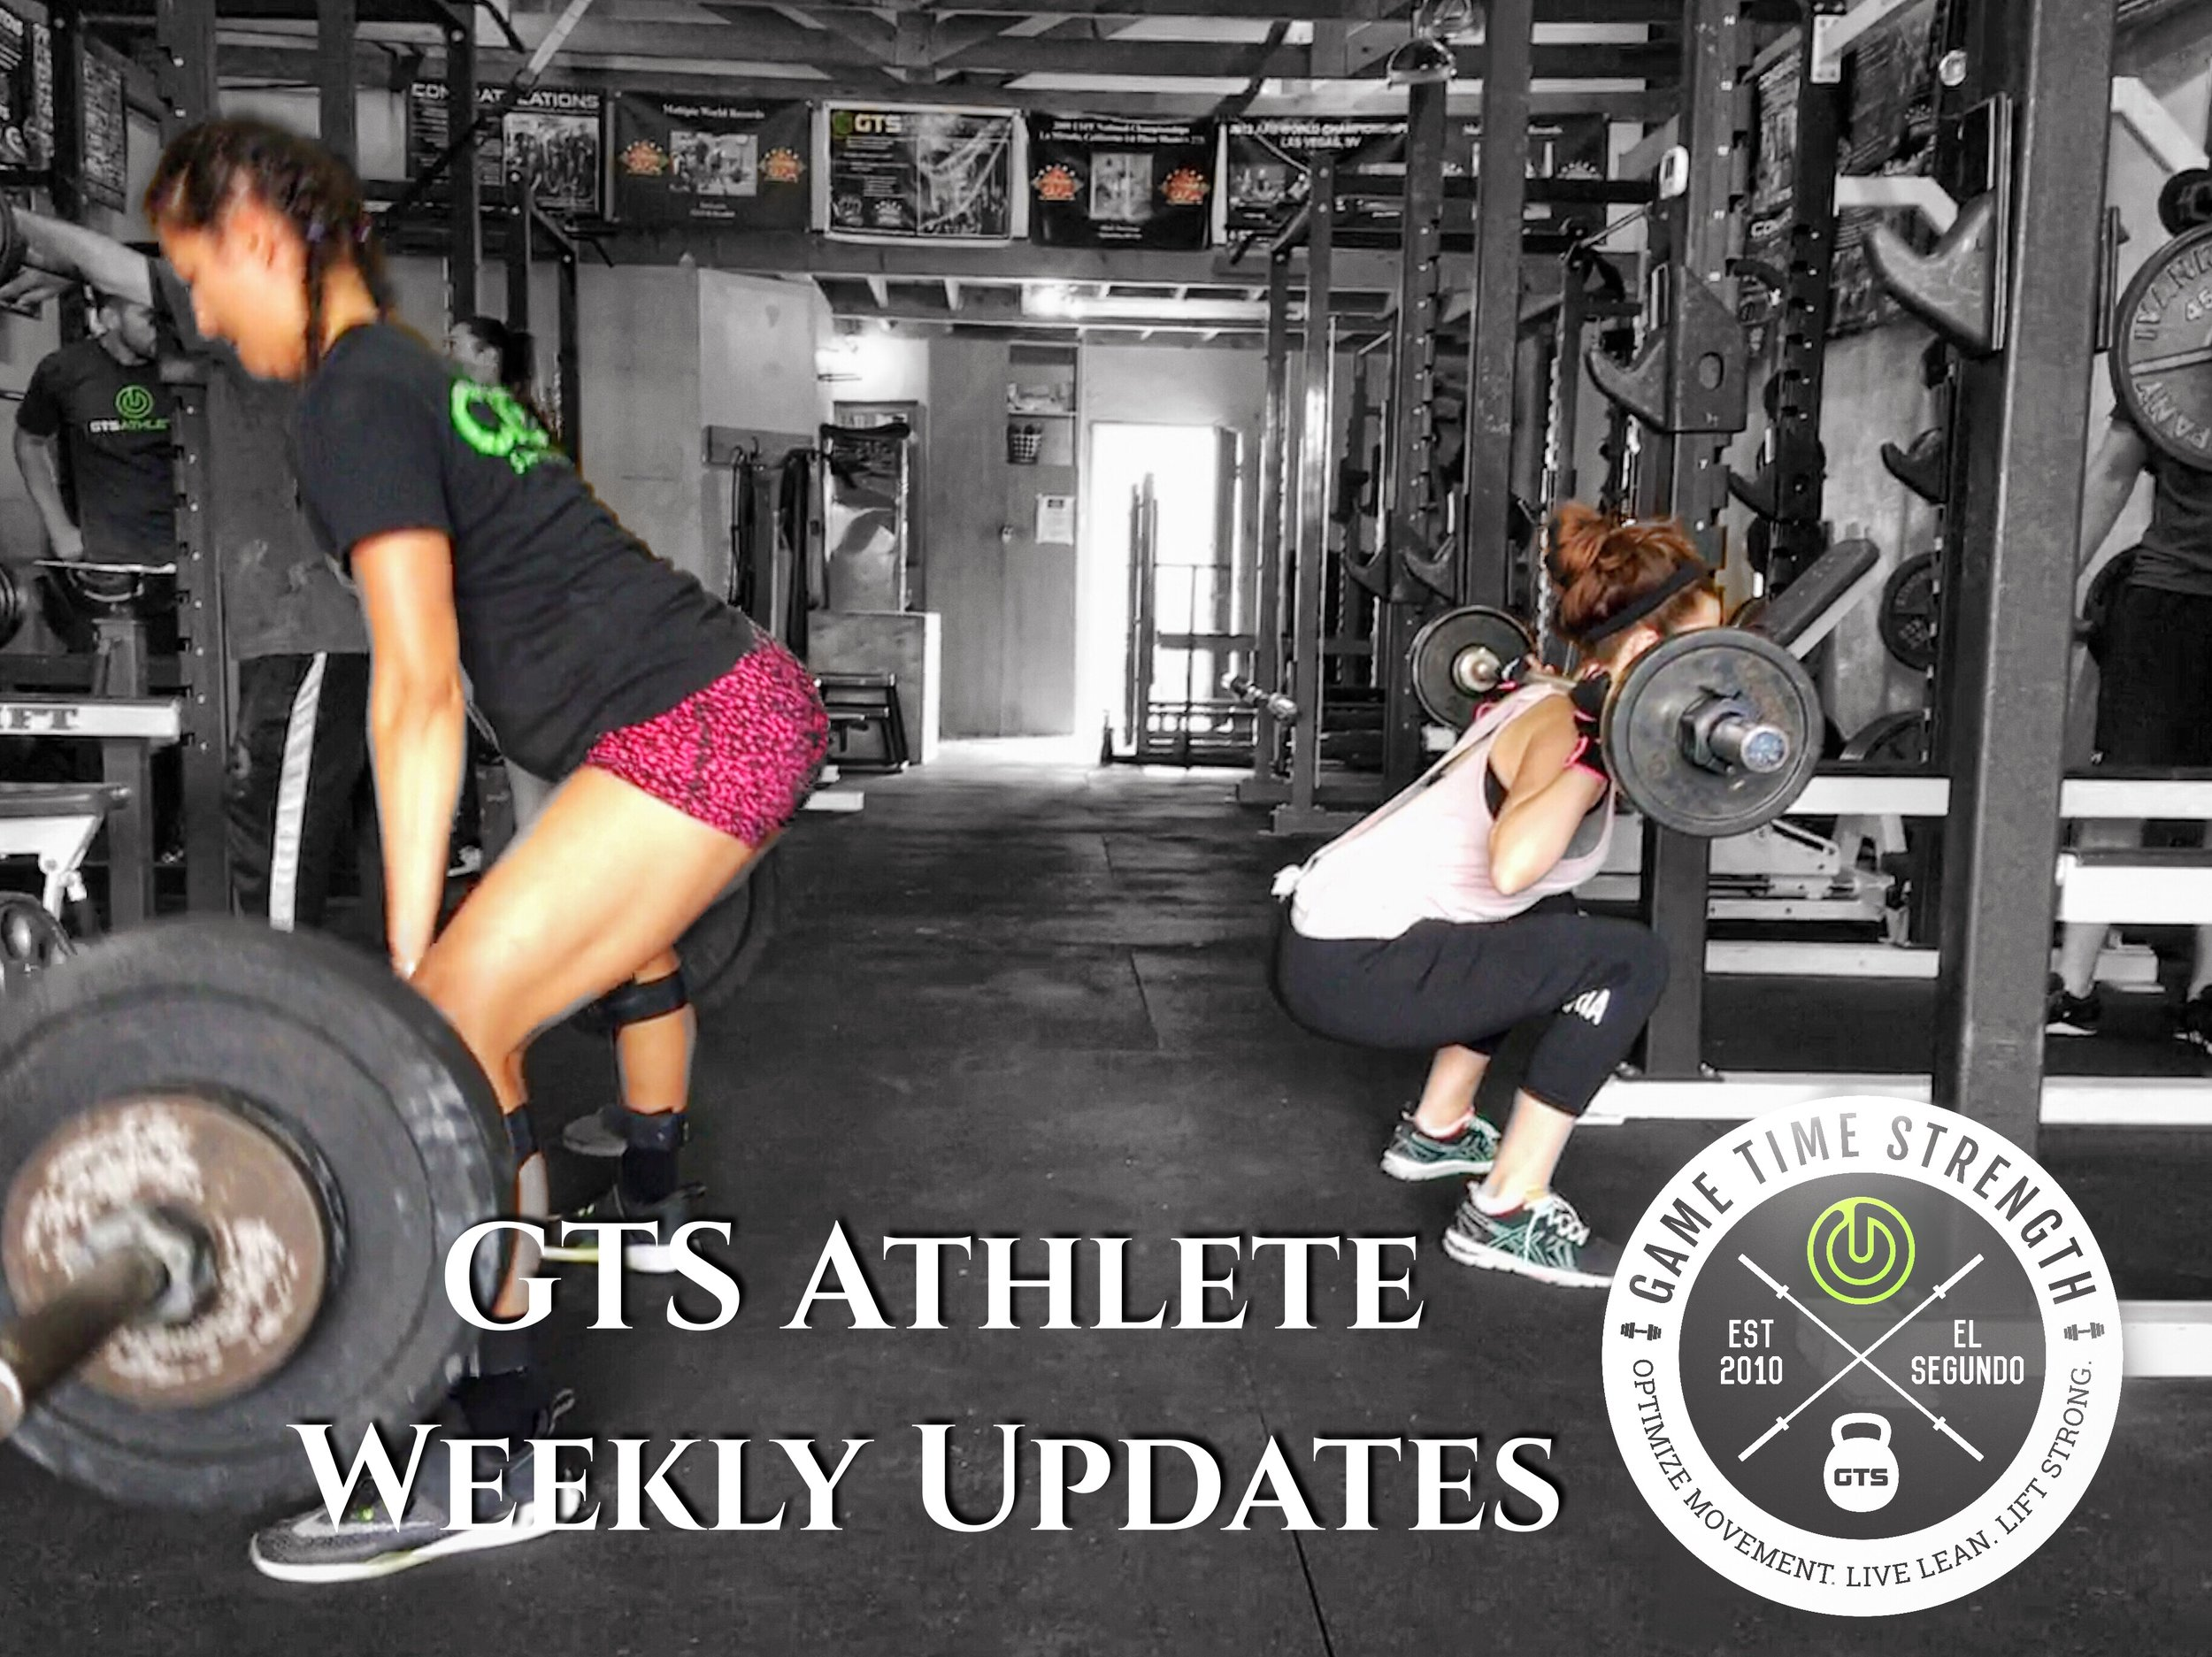 Game Time Strength GTS Athlete Weekly Updates - Los Angeles El Segundo Barbell Strength Training Gym Coaching Personal Group Training.JPG